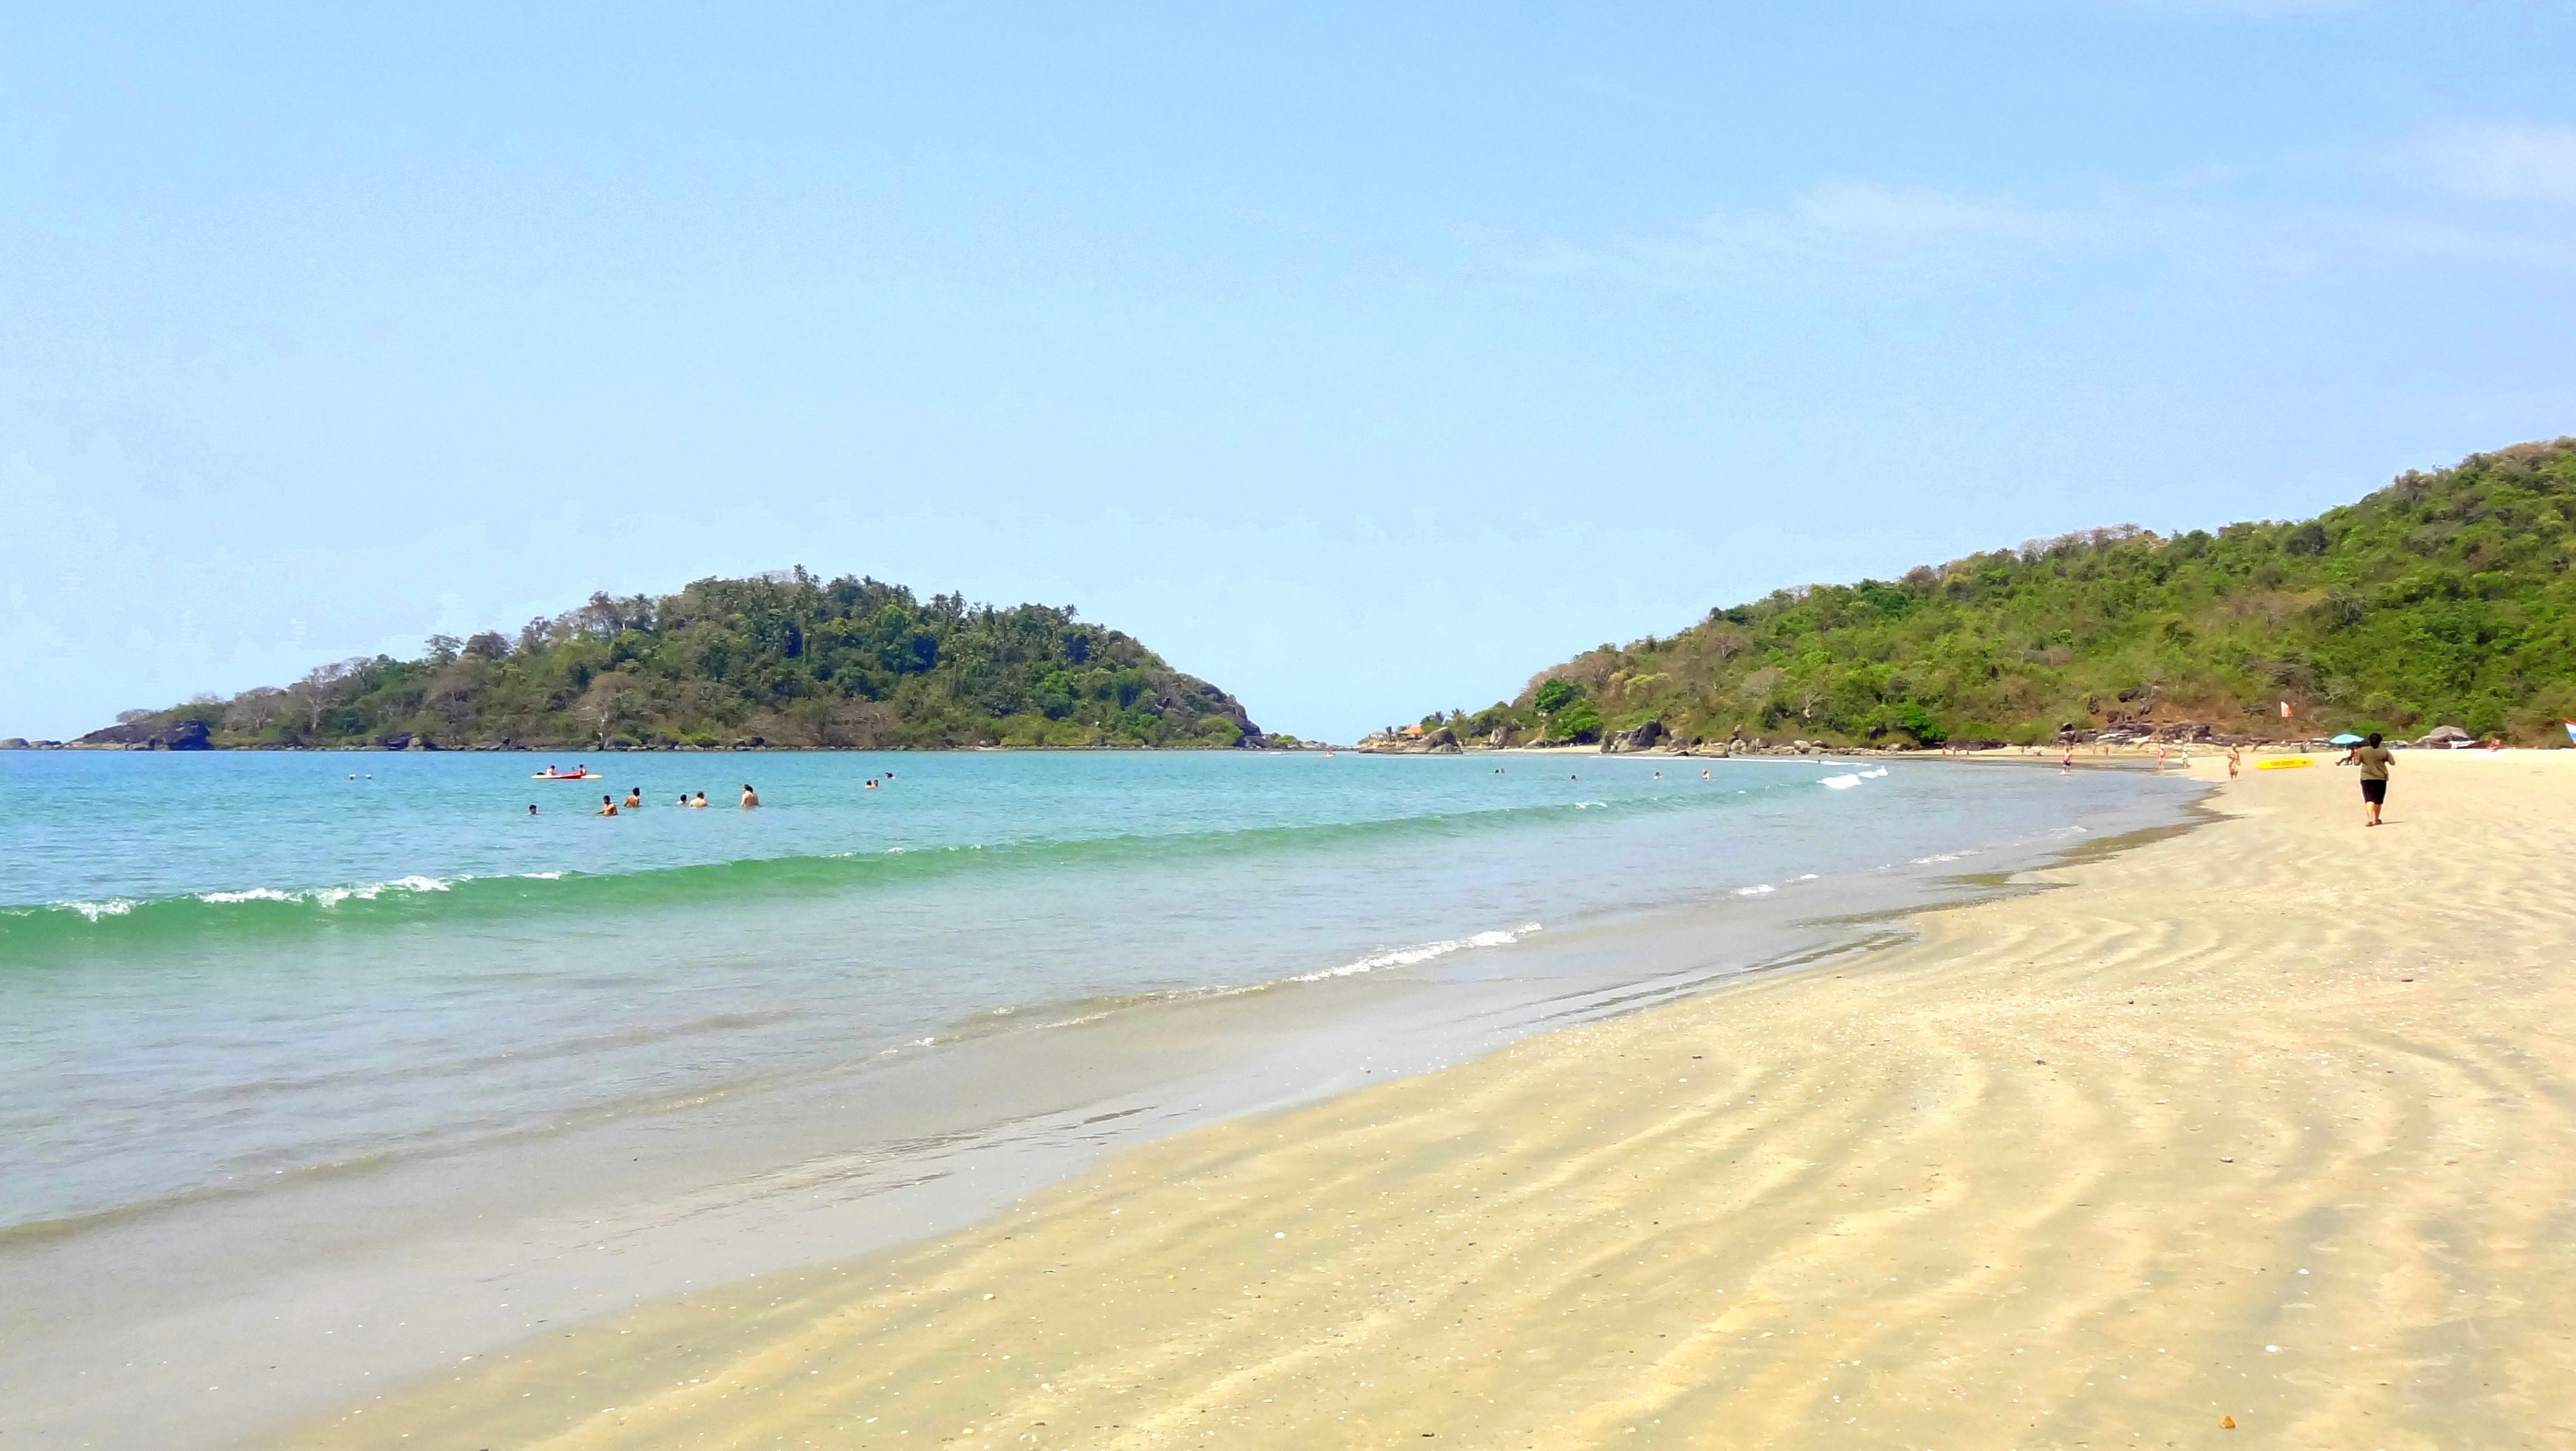 dating places in goa Top places to visit in goa, india: see tripadvisor's 68,458 traveller reviews and photos of goa attractions.